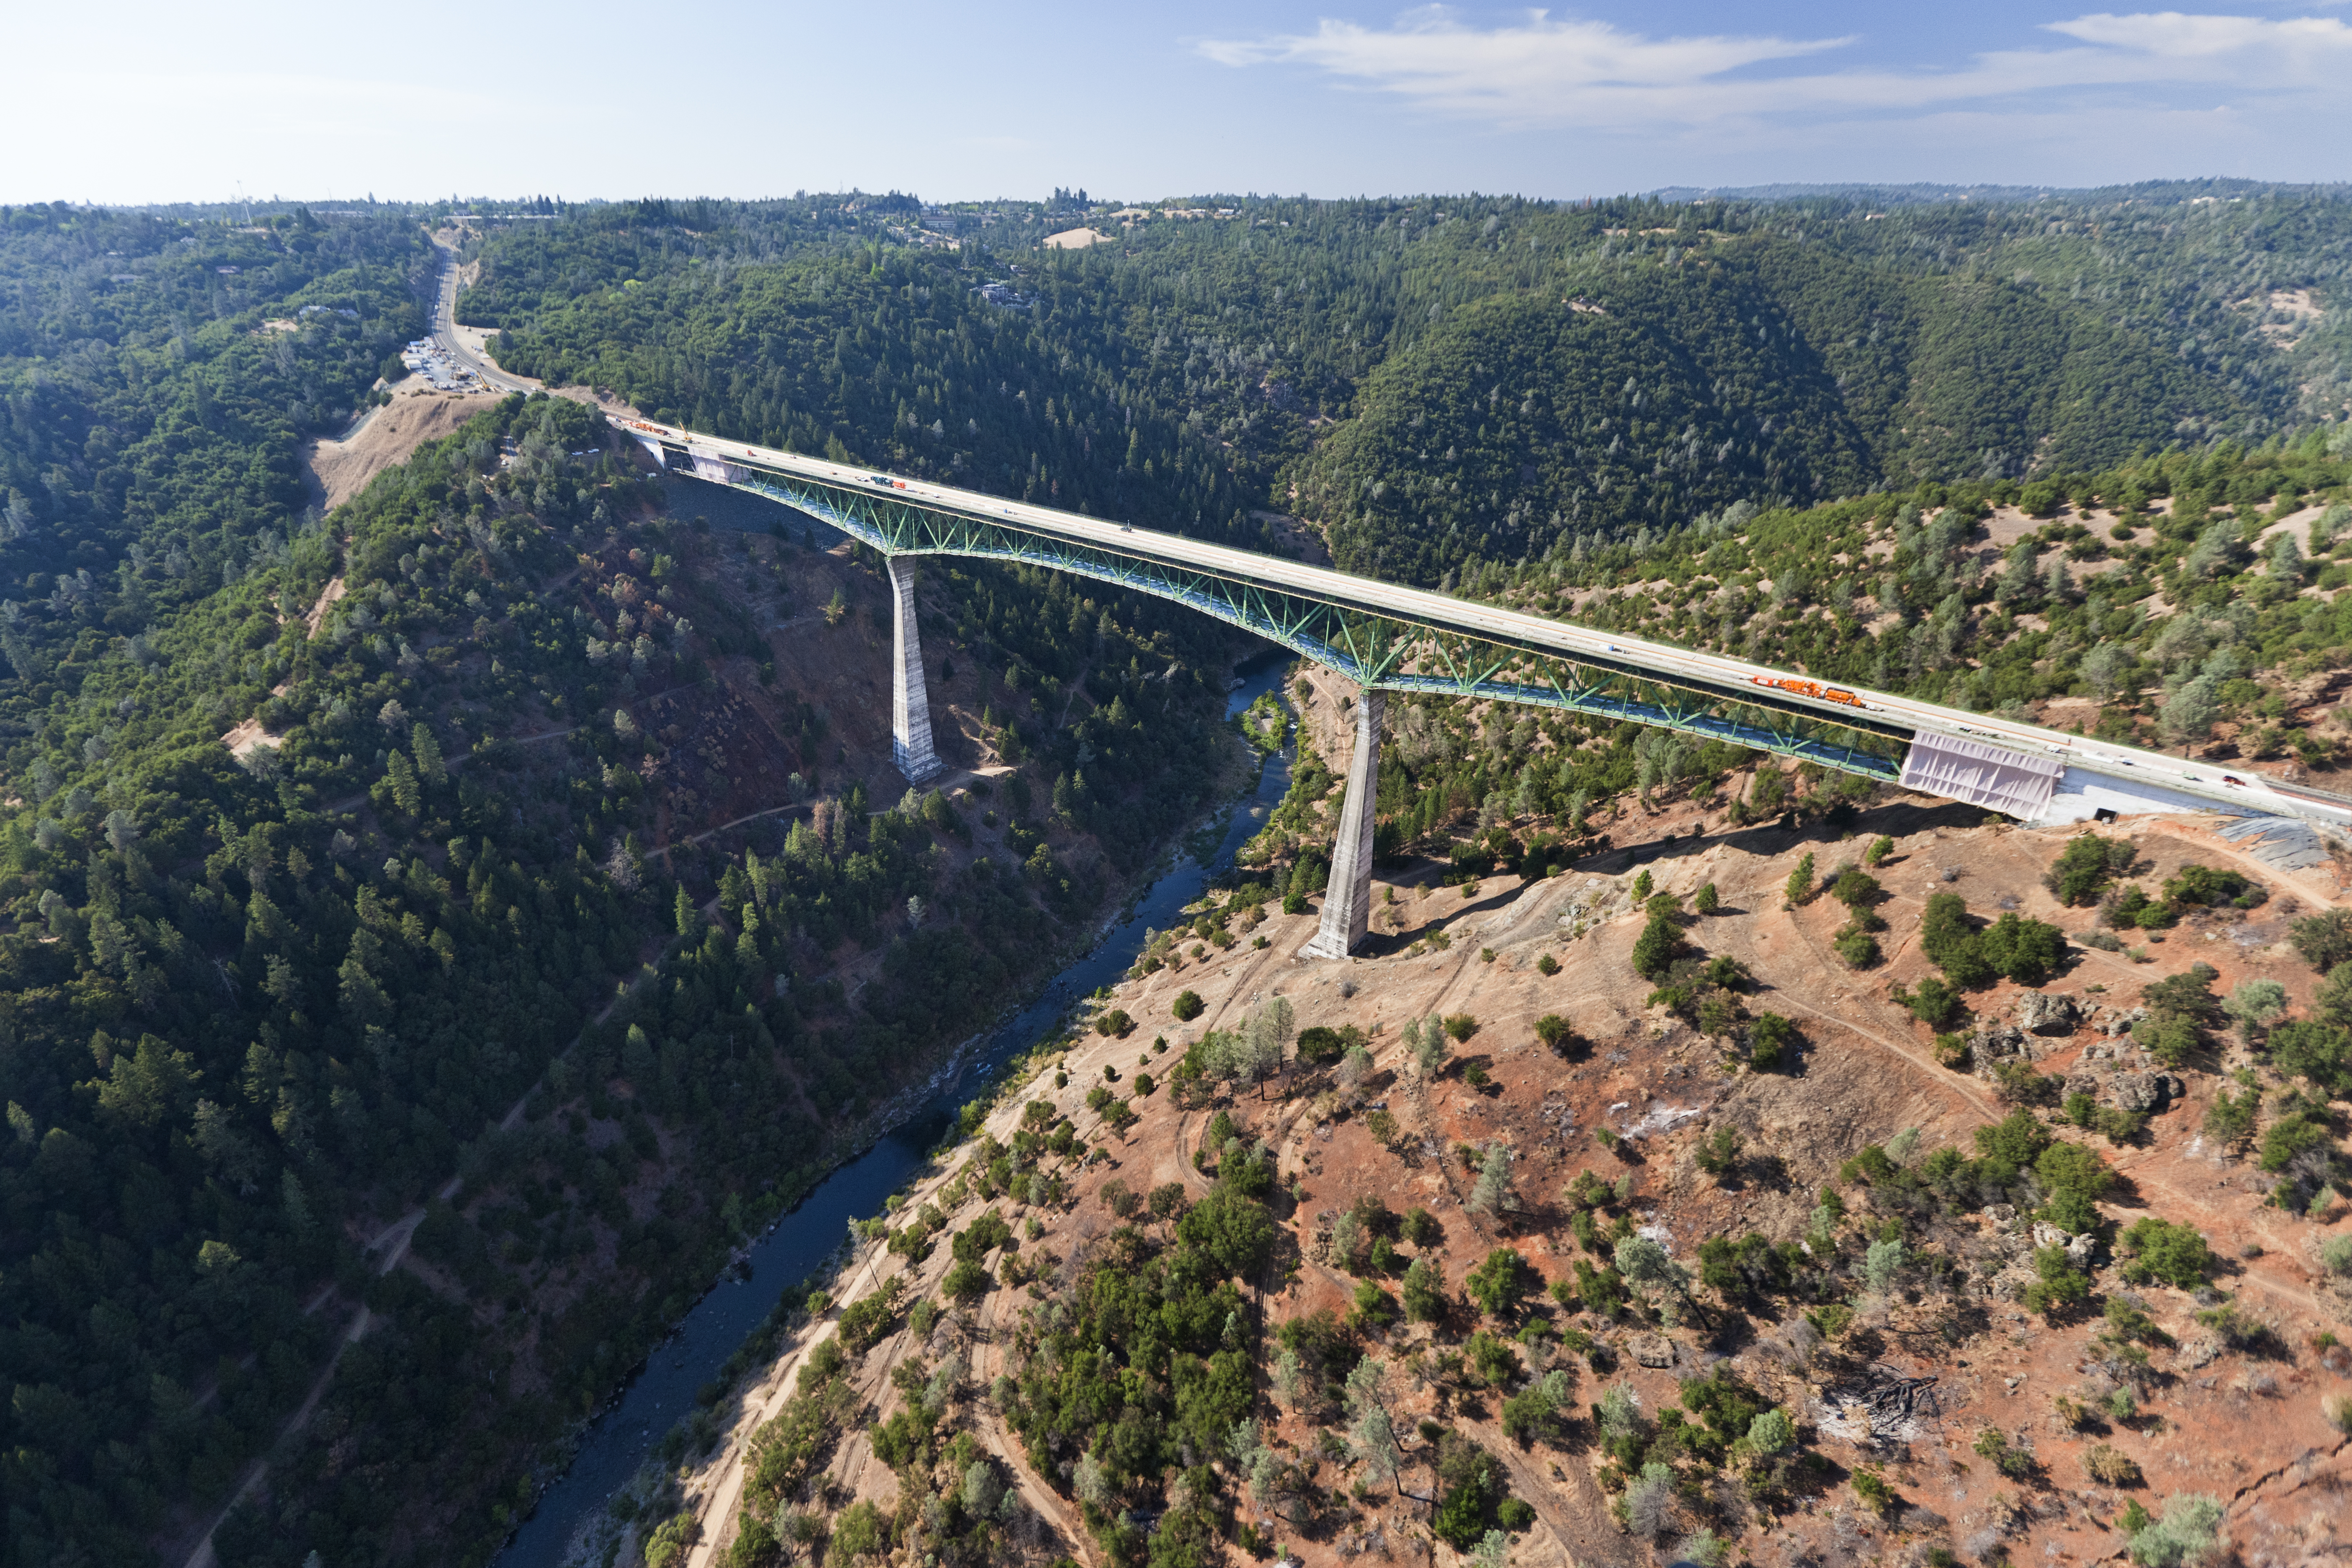 The Foresthill Bridge over the North Fork of the American River is the highest bridge in California.